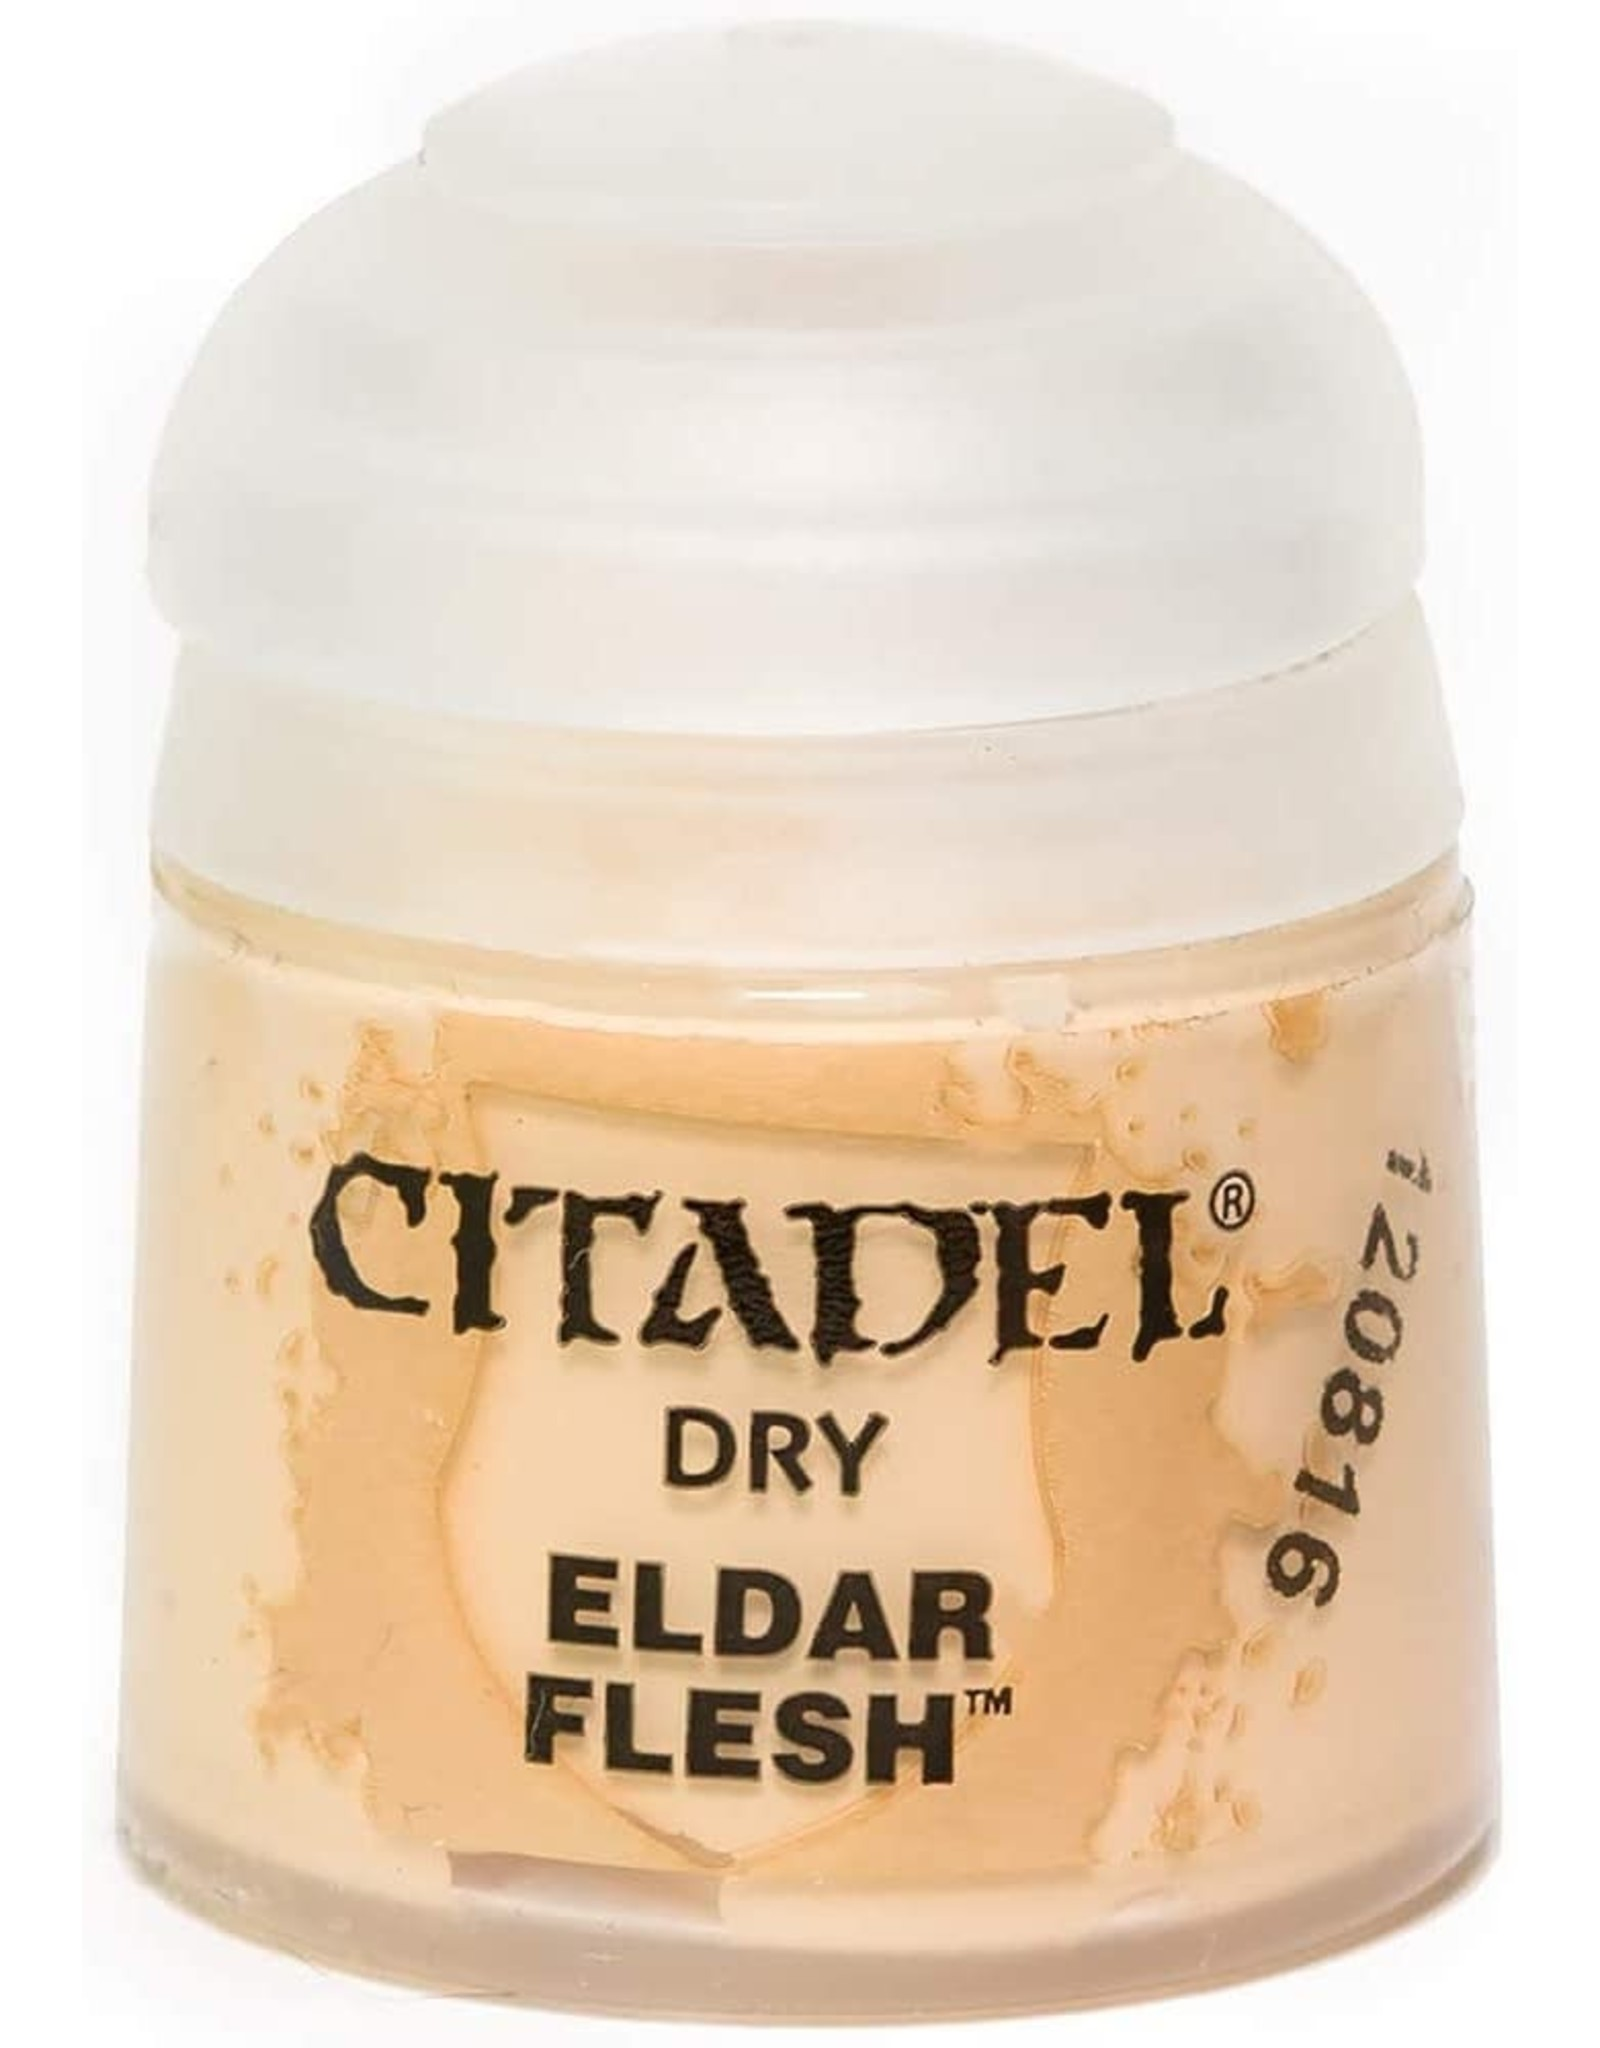 Games Workshop Citadel Paint: Eldar Flesh Dry 12ml